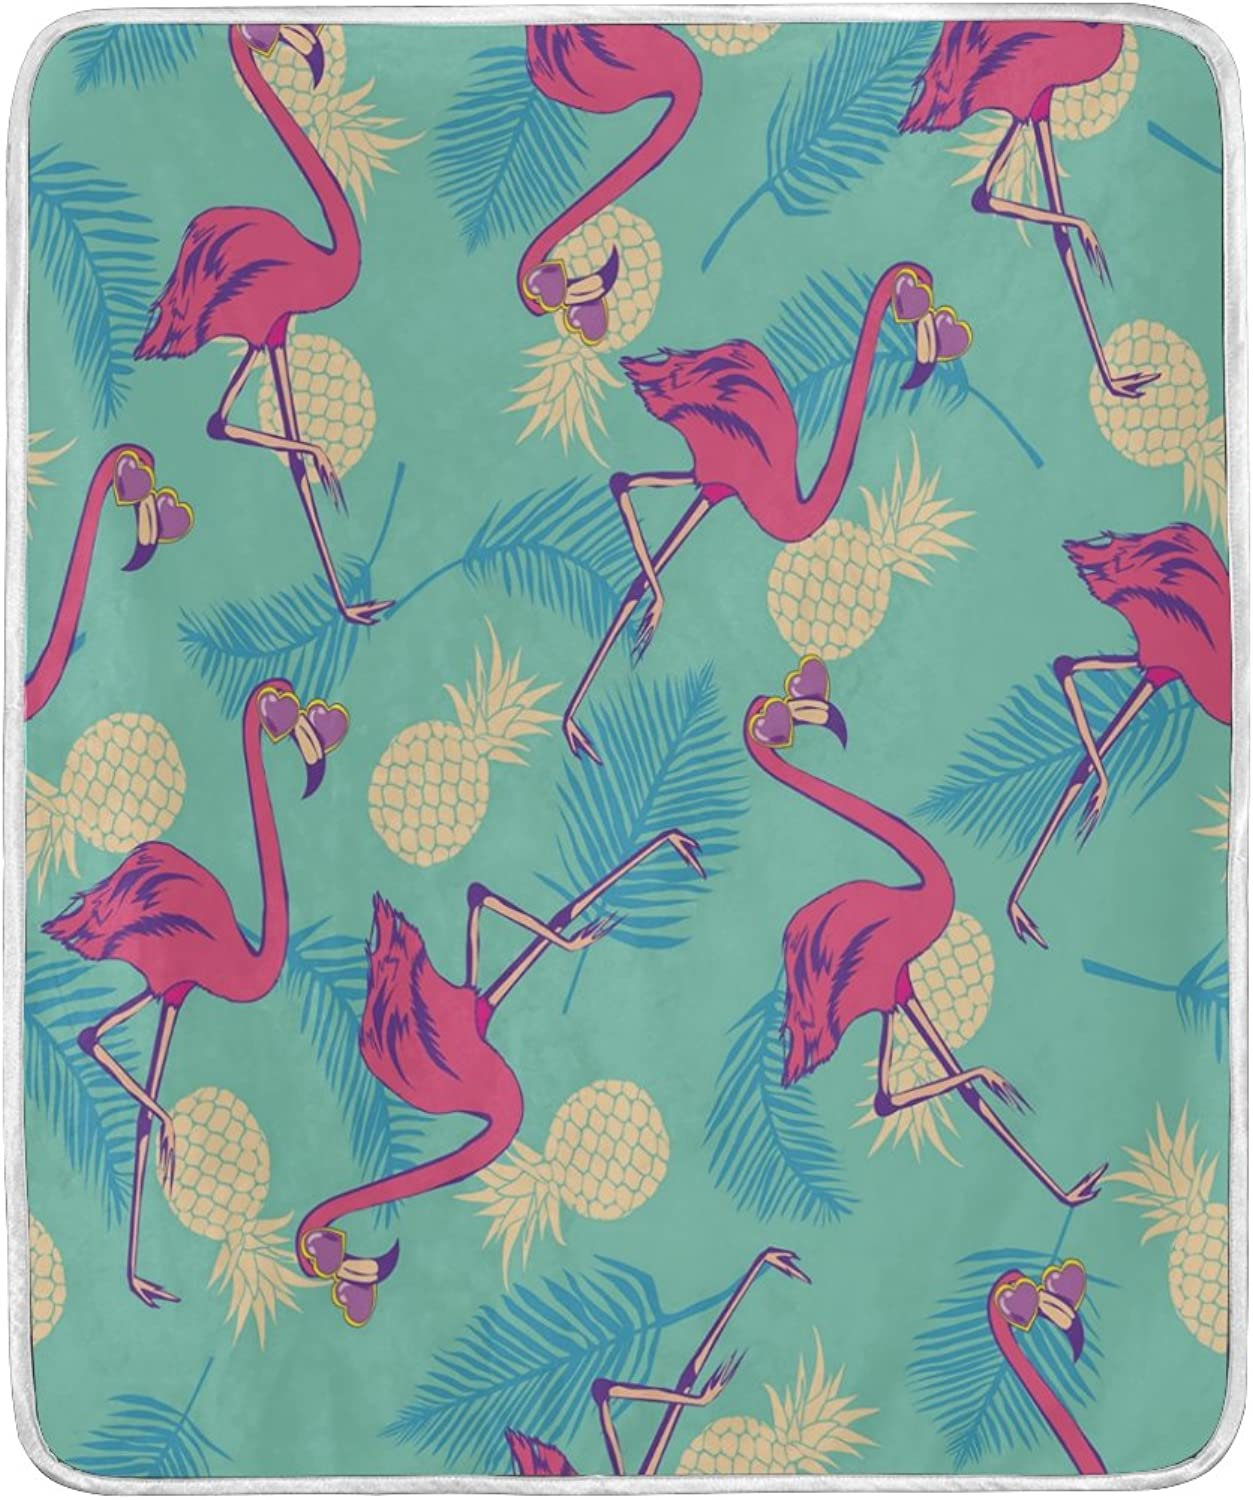 ALAZA Home Decor Vintage Flamingo Fruit Pineapple Palm Tree Blanket Soft Warm Blankets for Bed Couch Sofa Lightweight Travelling Camping 60 x 50 inch Throw Size for Kids Boys Women